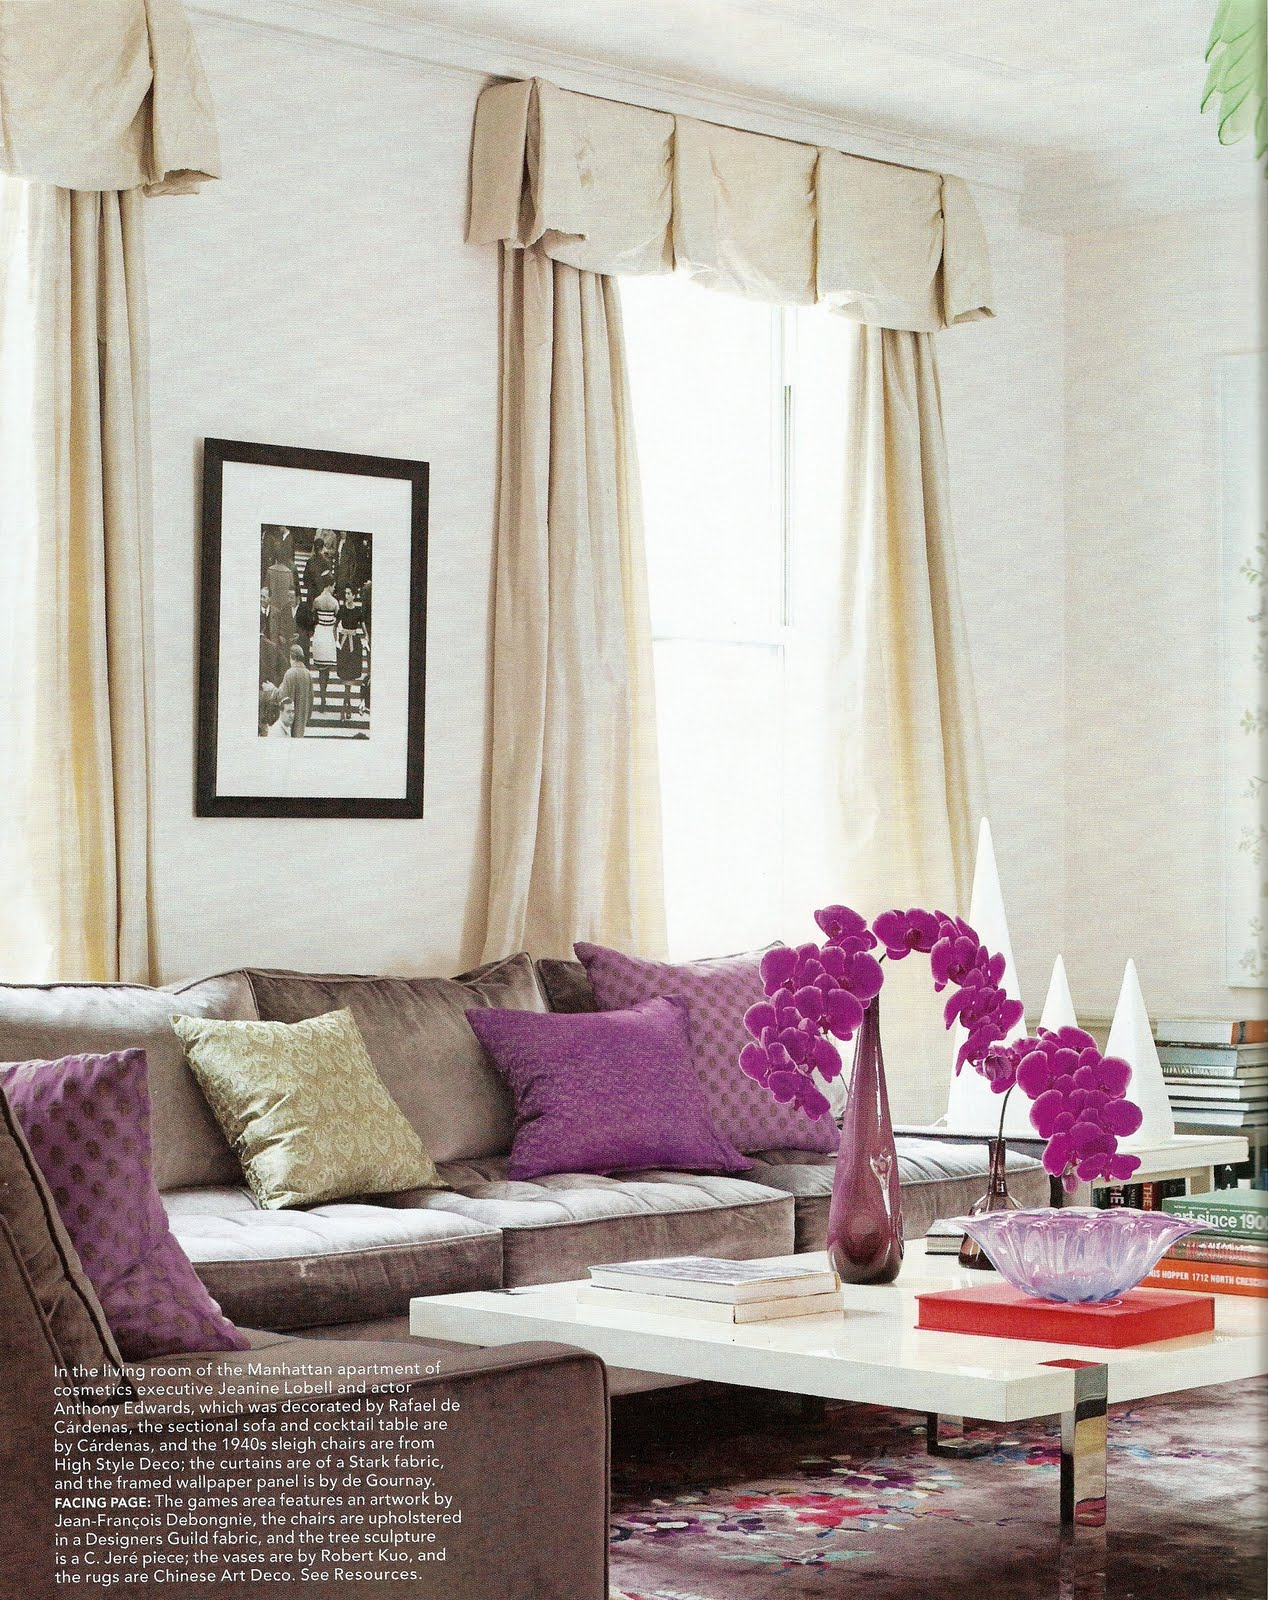 Http Annechovie Blogspot Com 2010 09 Elle Decor Fashion Issue Html